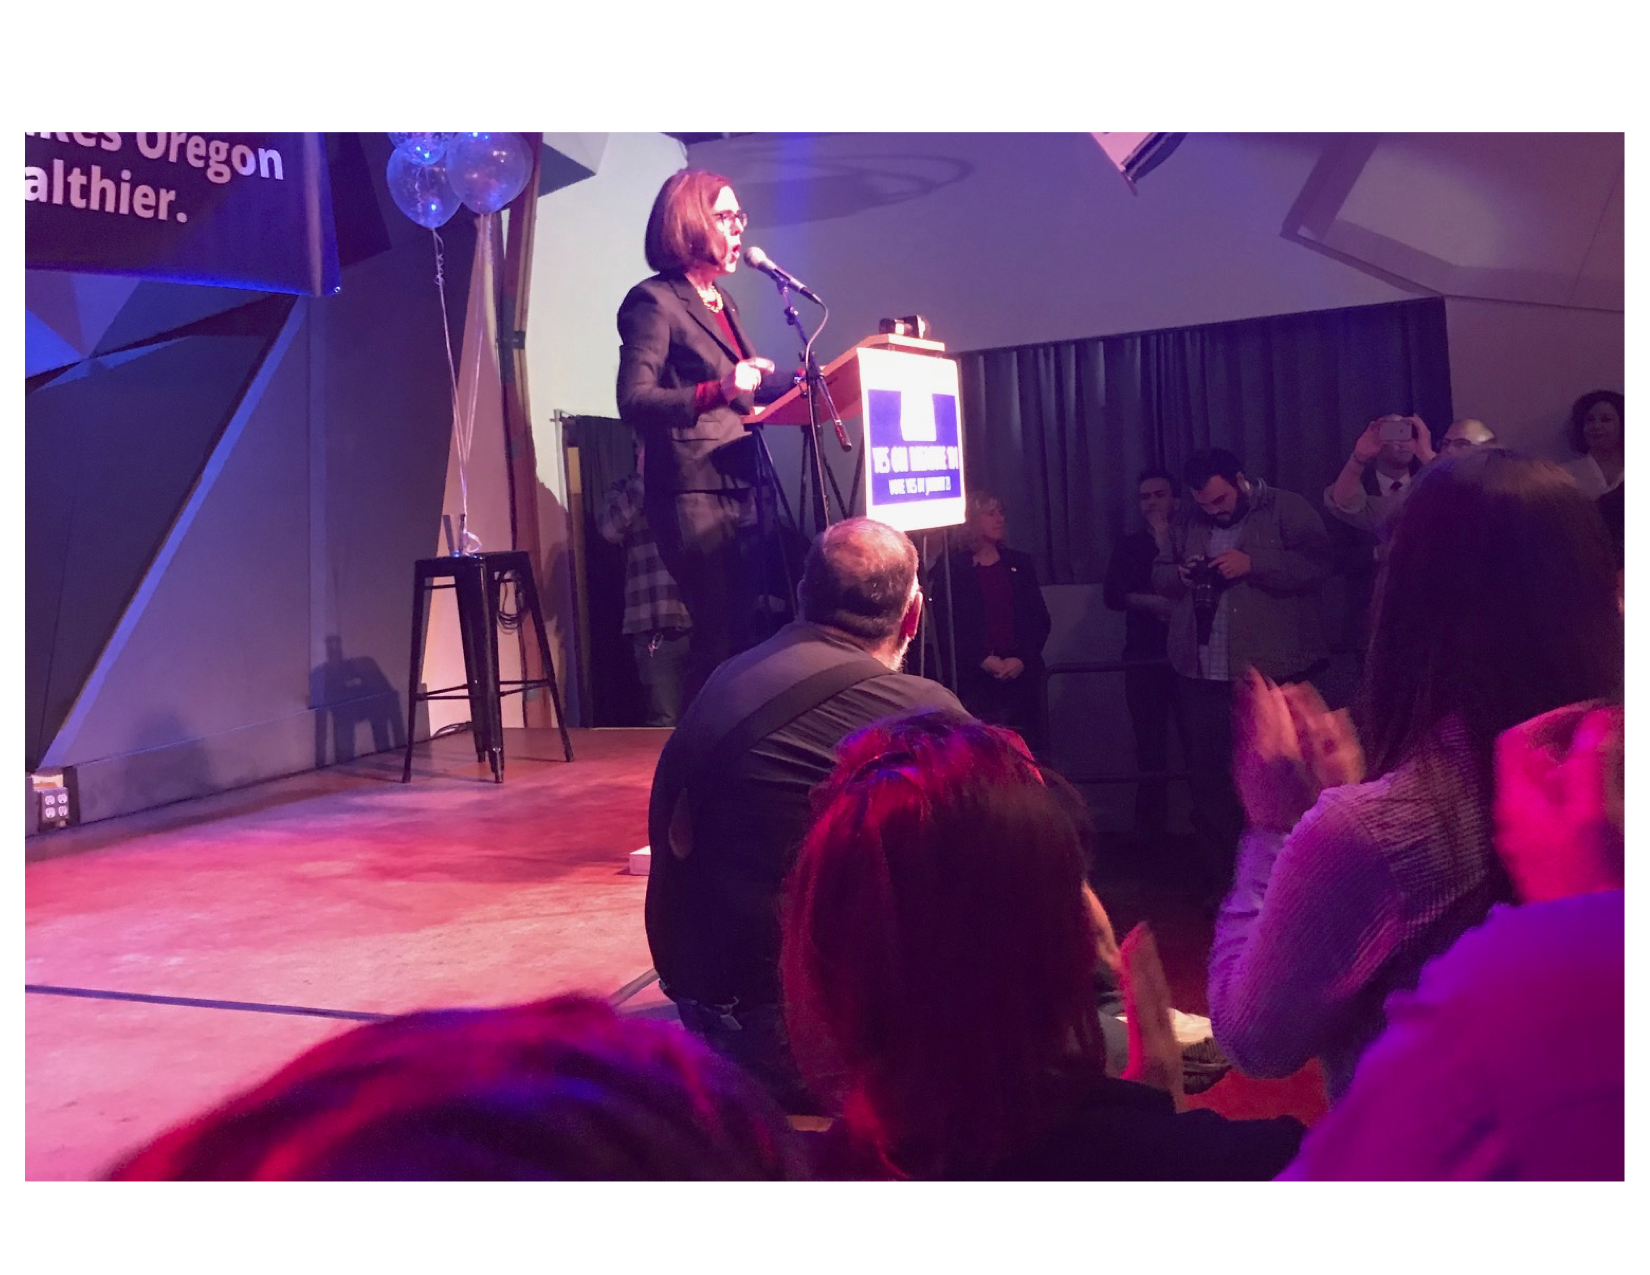 Governor Kate Brown told Measure 101 supporters at Tuesday night's victory party that voter approval of the Medicaid funding plan shows Oregonians support a GSD (Get Stuff Done) agenda.